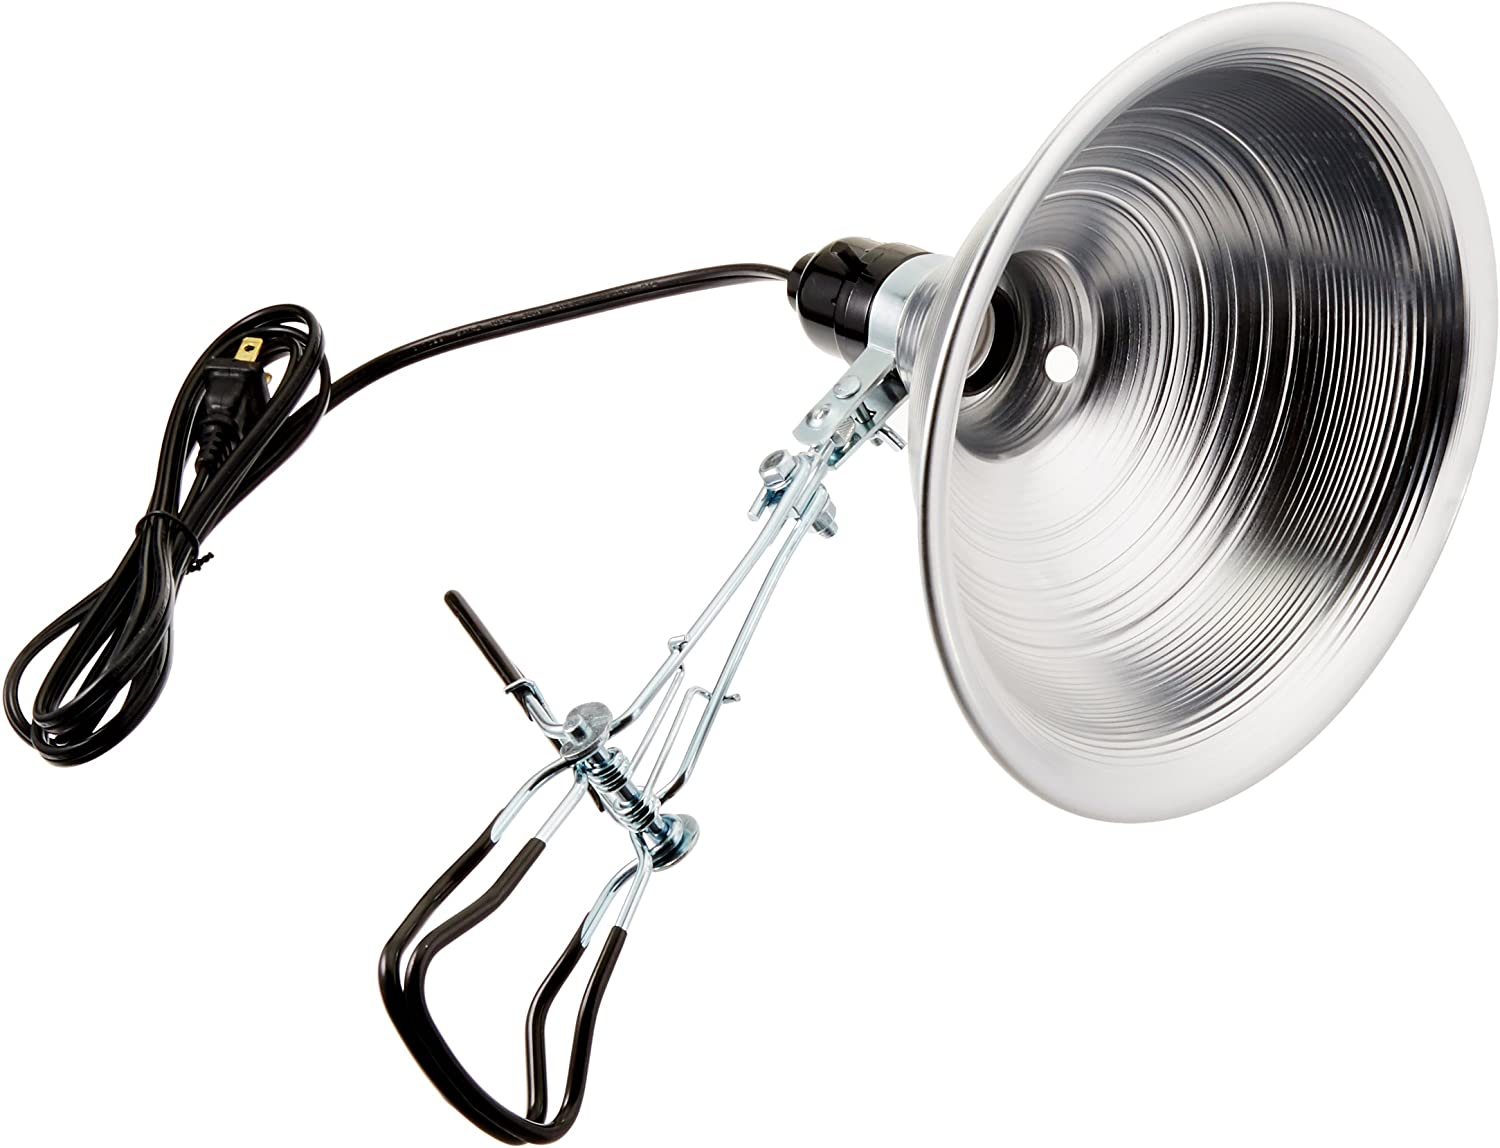 Bayco SL-301B4 8.5 Inch Clamp Light with Aluminum Reflector with Grip-Tite Super Clamp